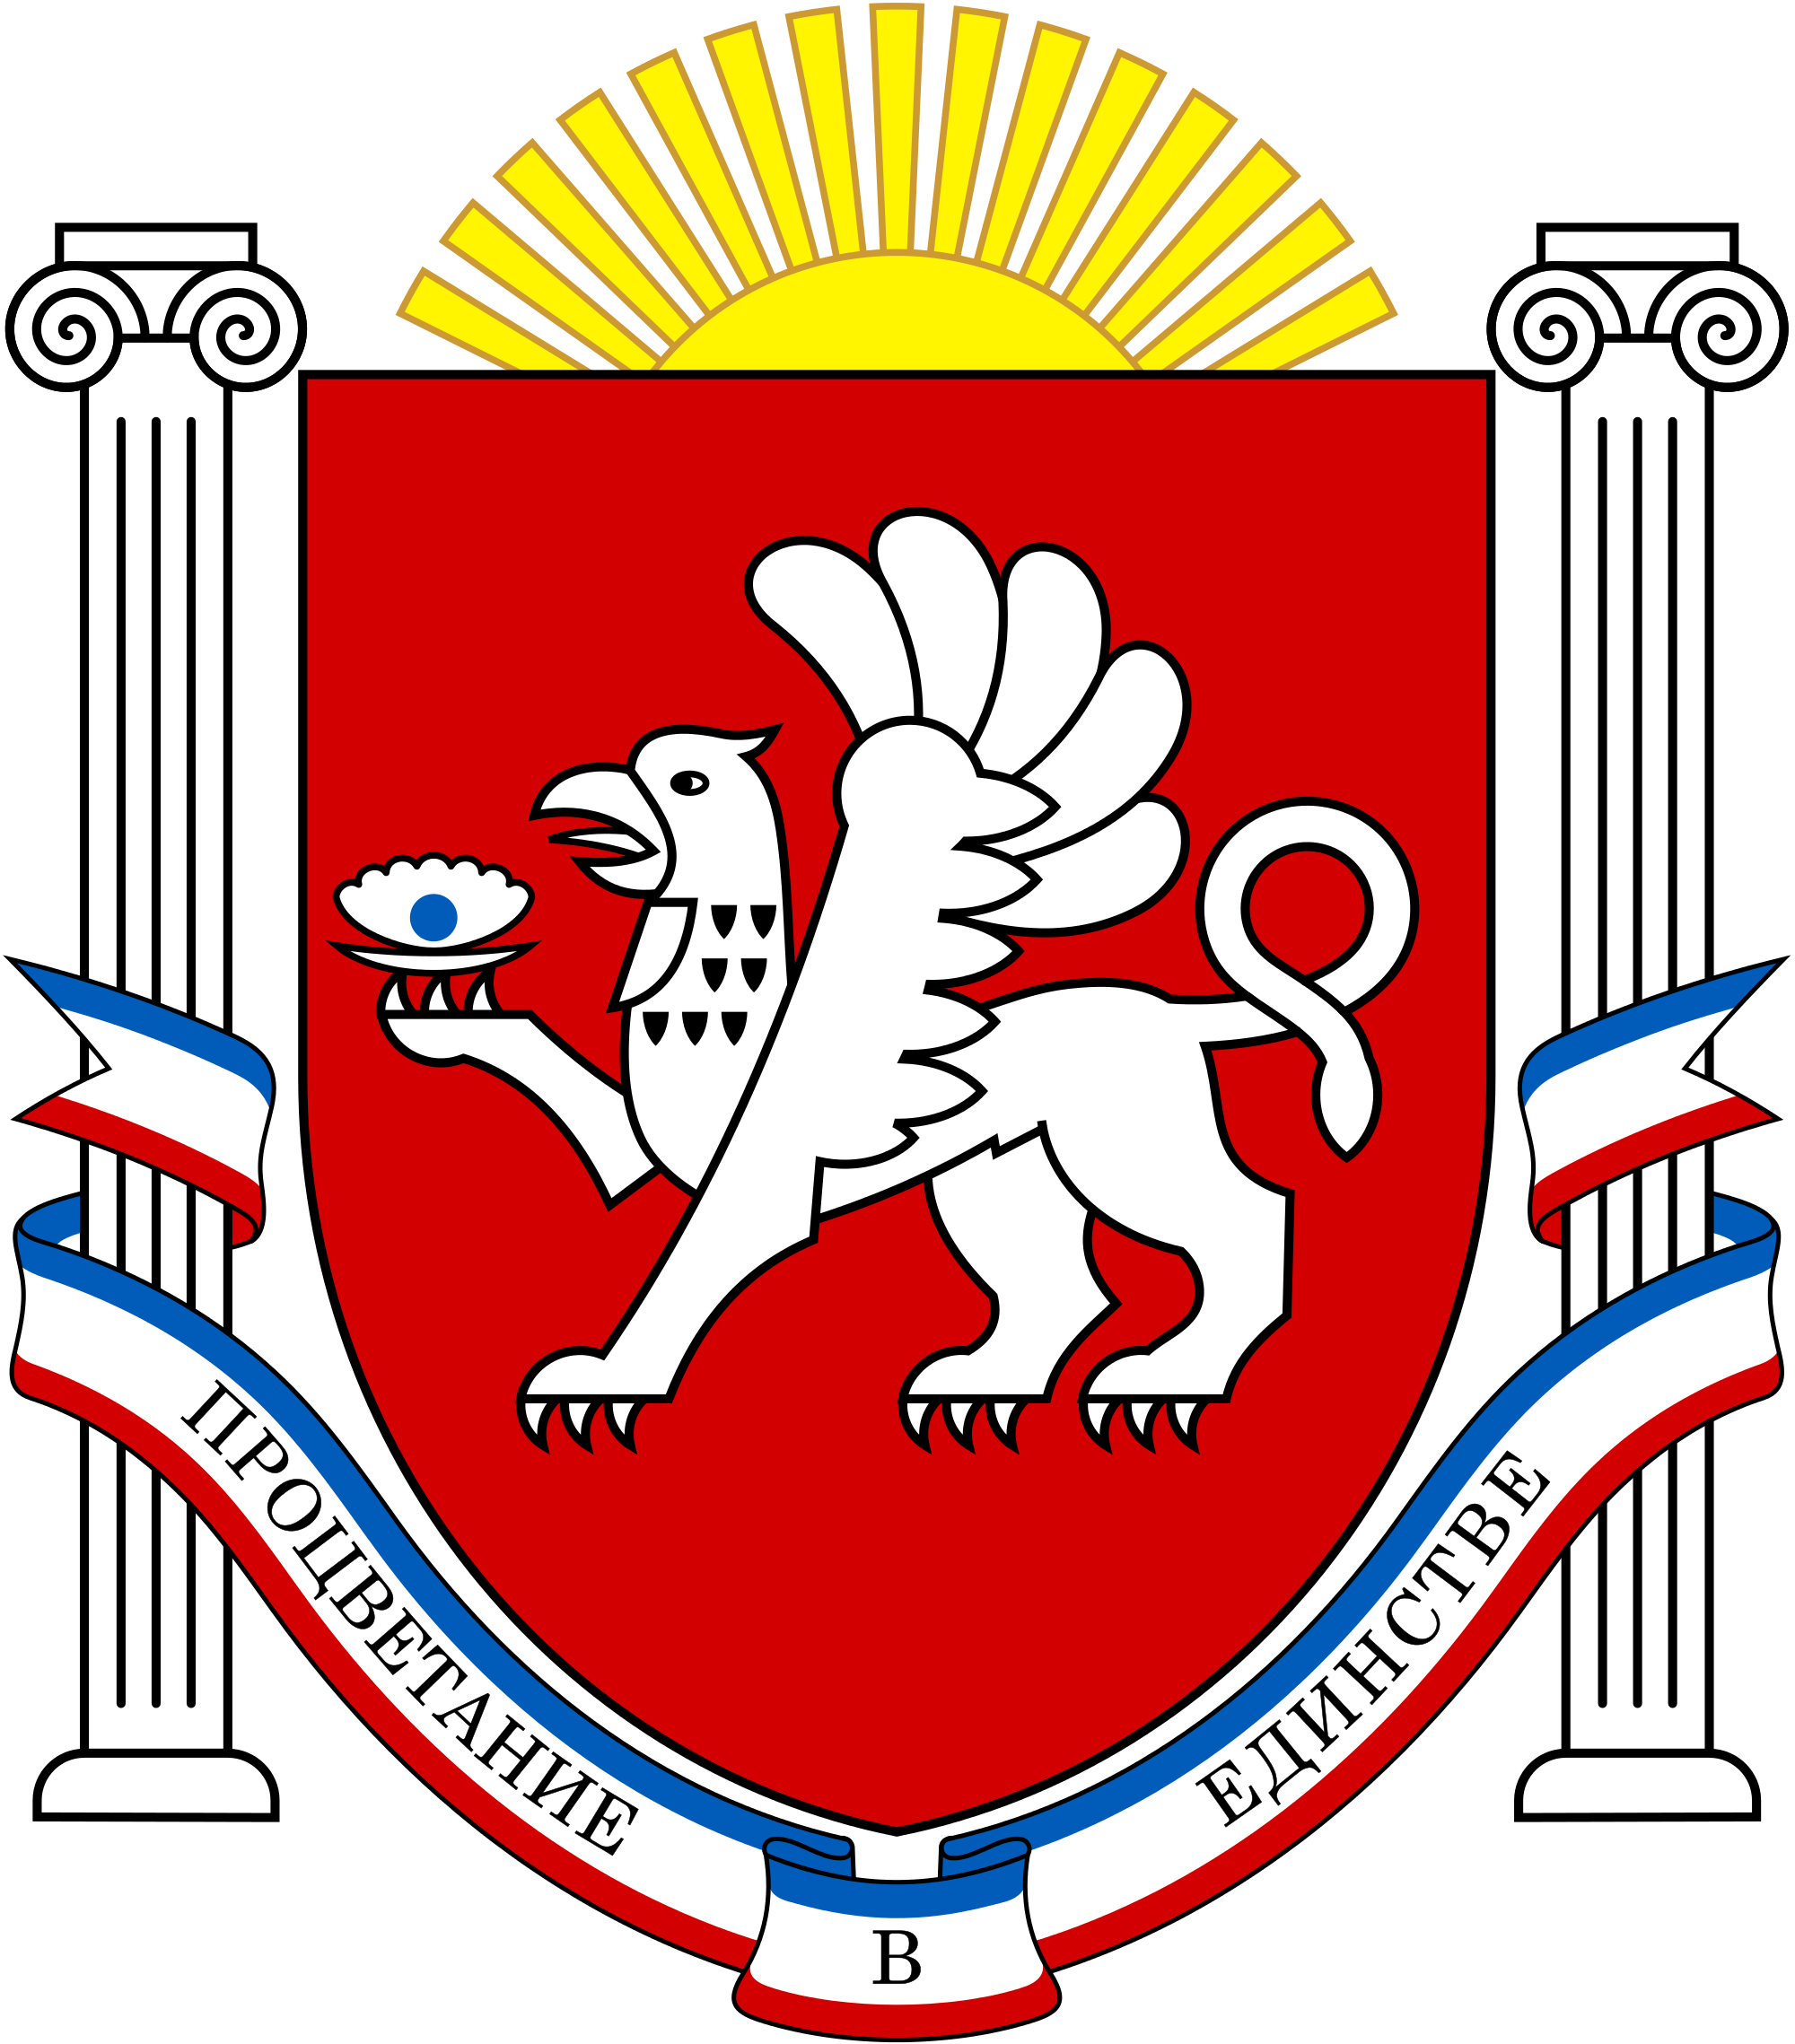 Coat of arms crimea. Shell clipart heraldry